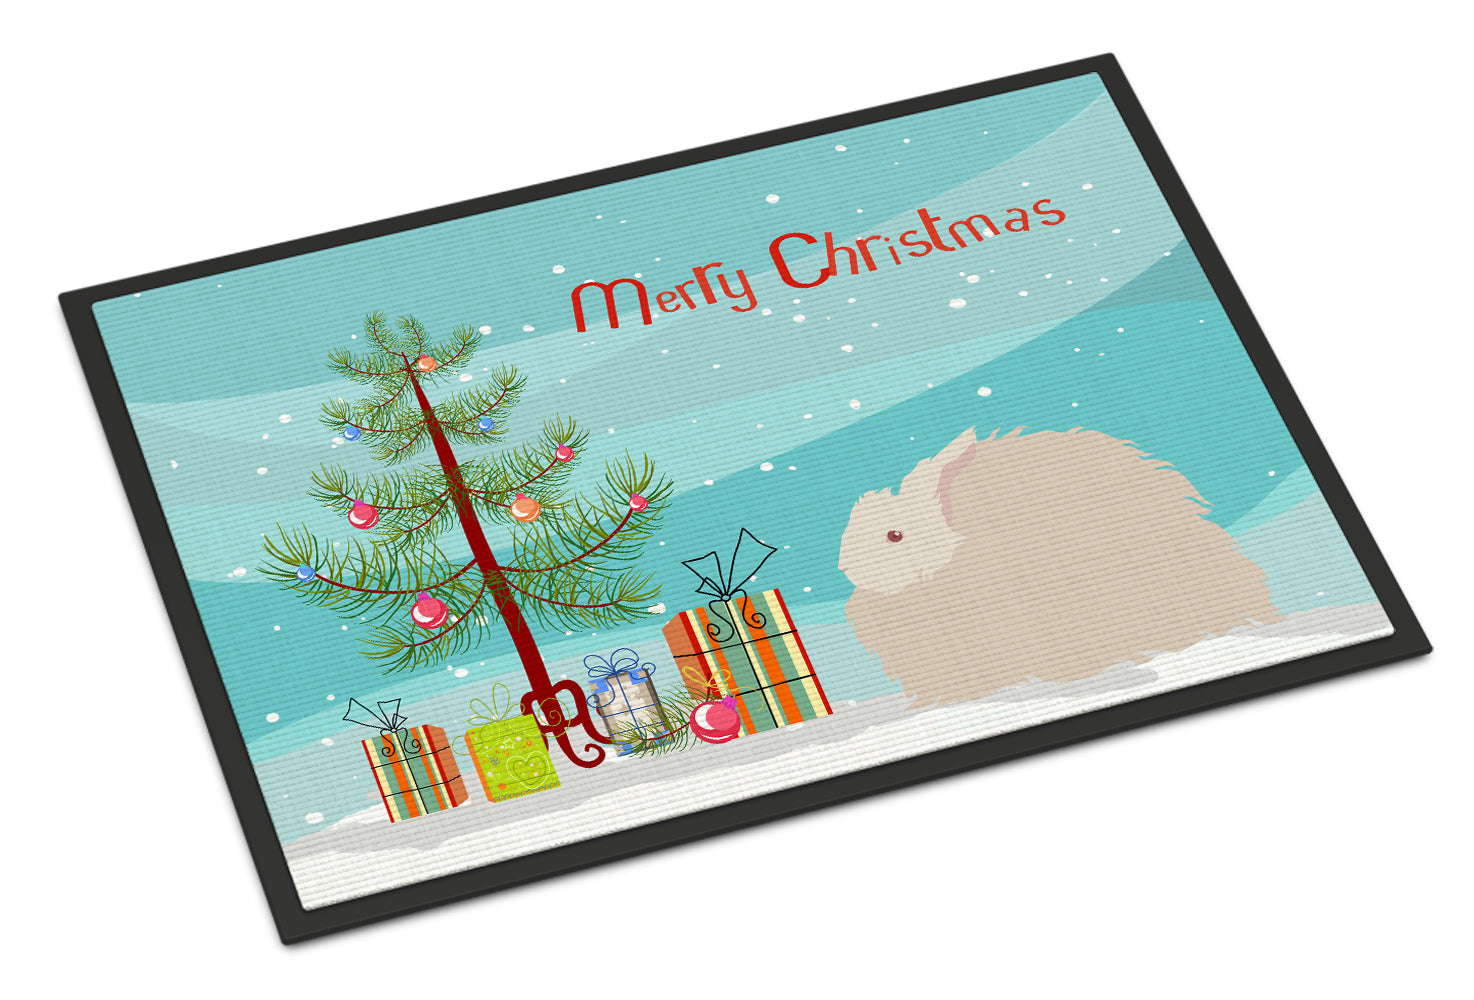 Fluffy Angora Rabbit Christmas Indoor or Outdoor Mat 18x27 BB9326MAT by Caroline's Treasures